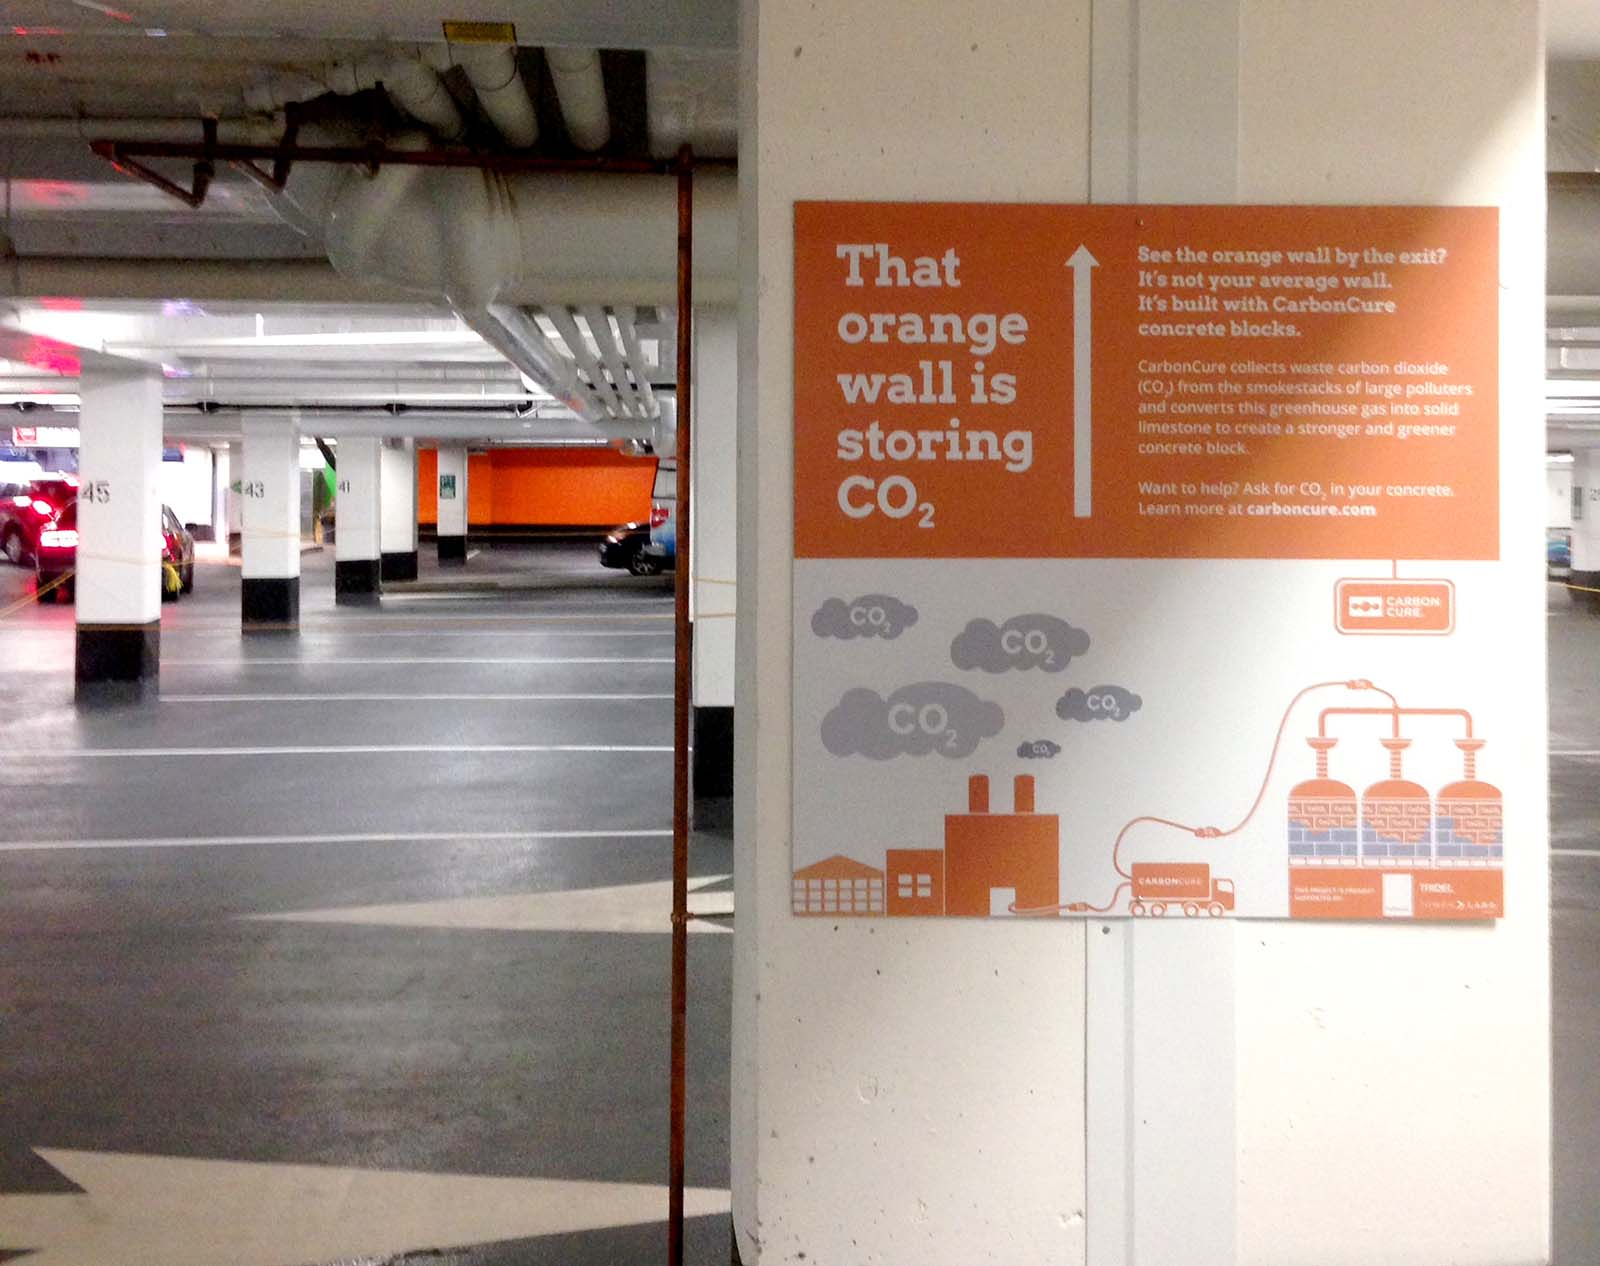 Developer Tridel showcased its building's carbon reduction using signs throughout its concrete parking garage.